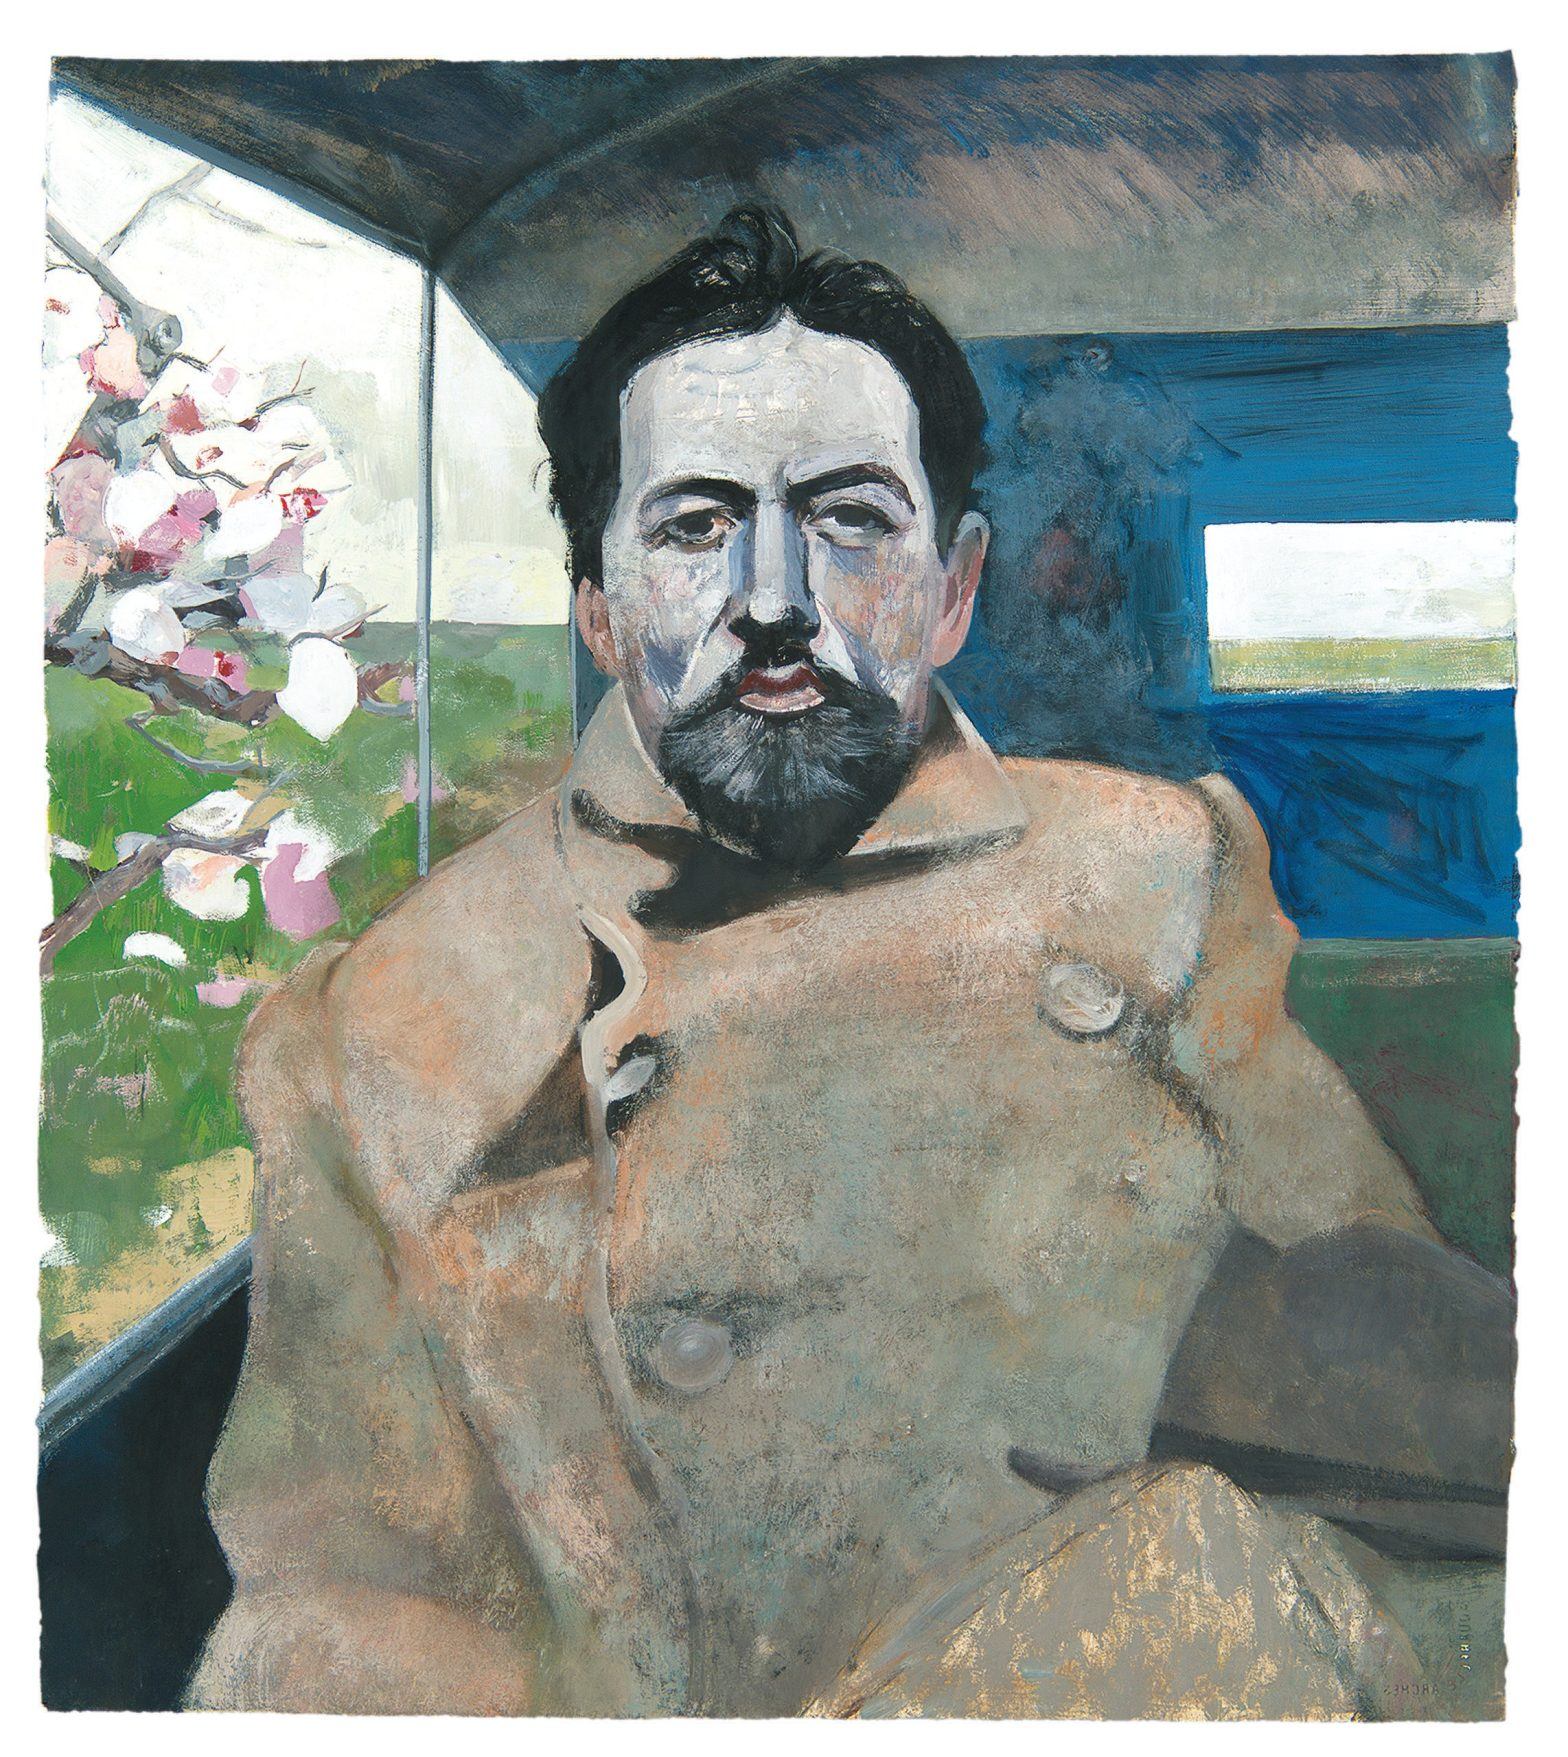 The world according to Anton Chekhov